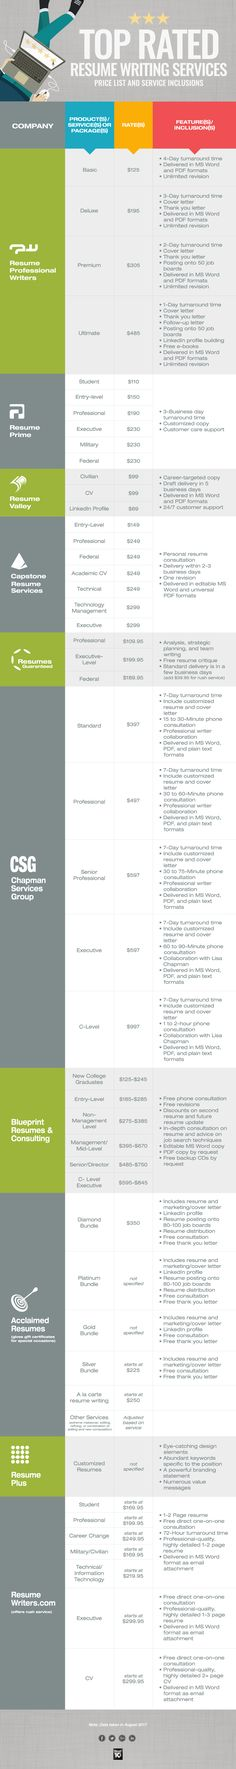 copyright (c) CareerSteering Page 1 of 3 Resumes - top rated resume builder